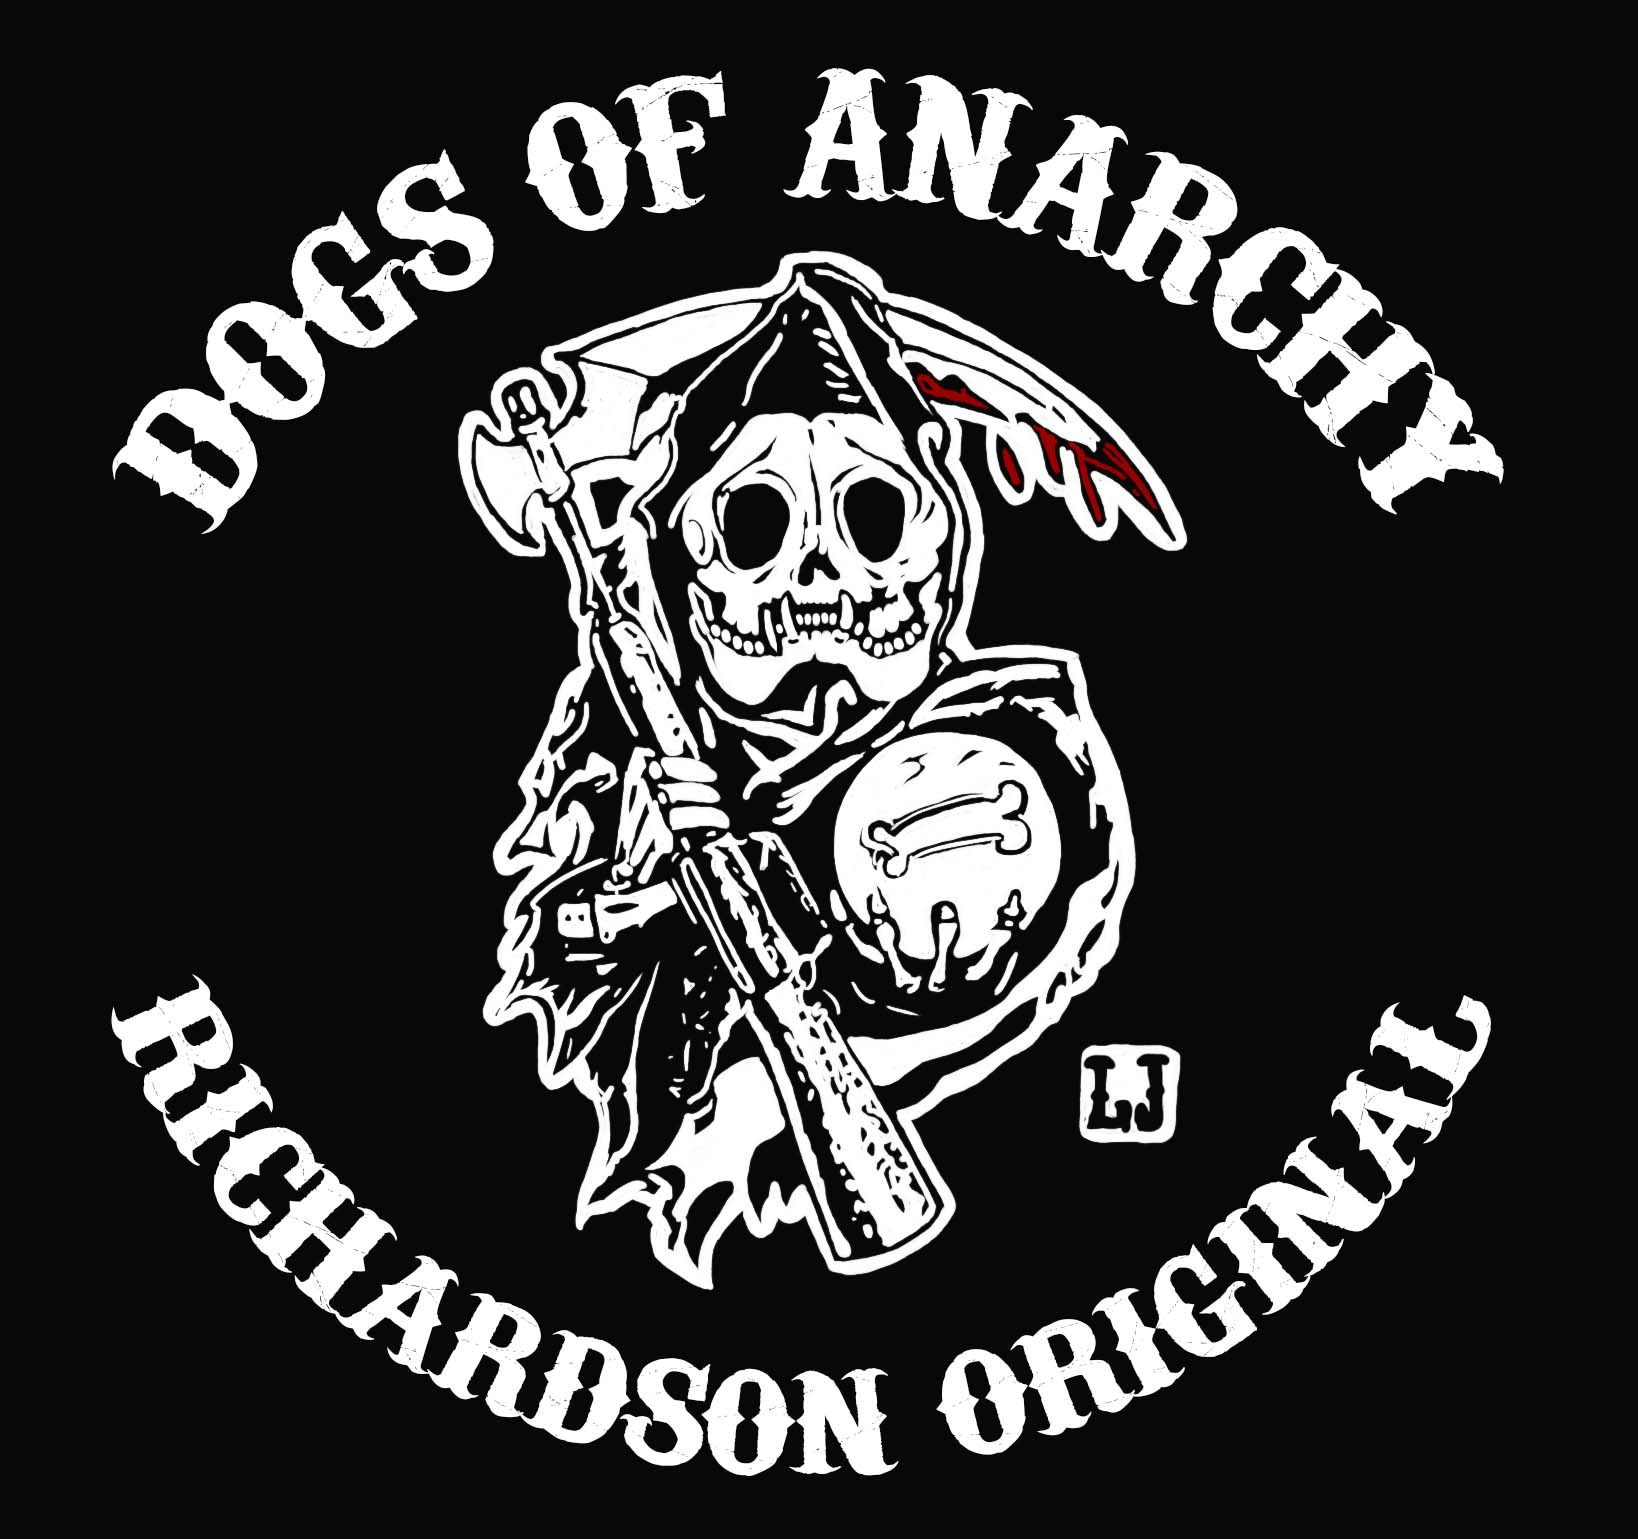 Dogs of Anarchy leather vest